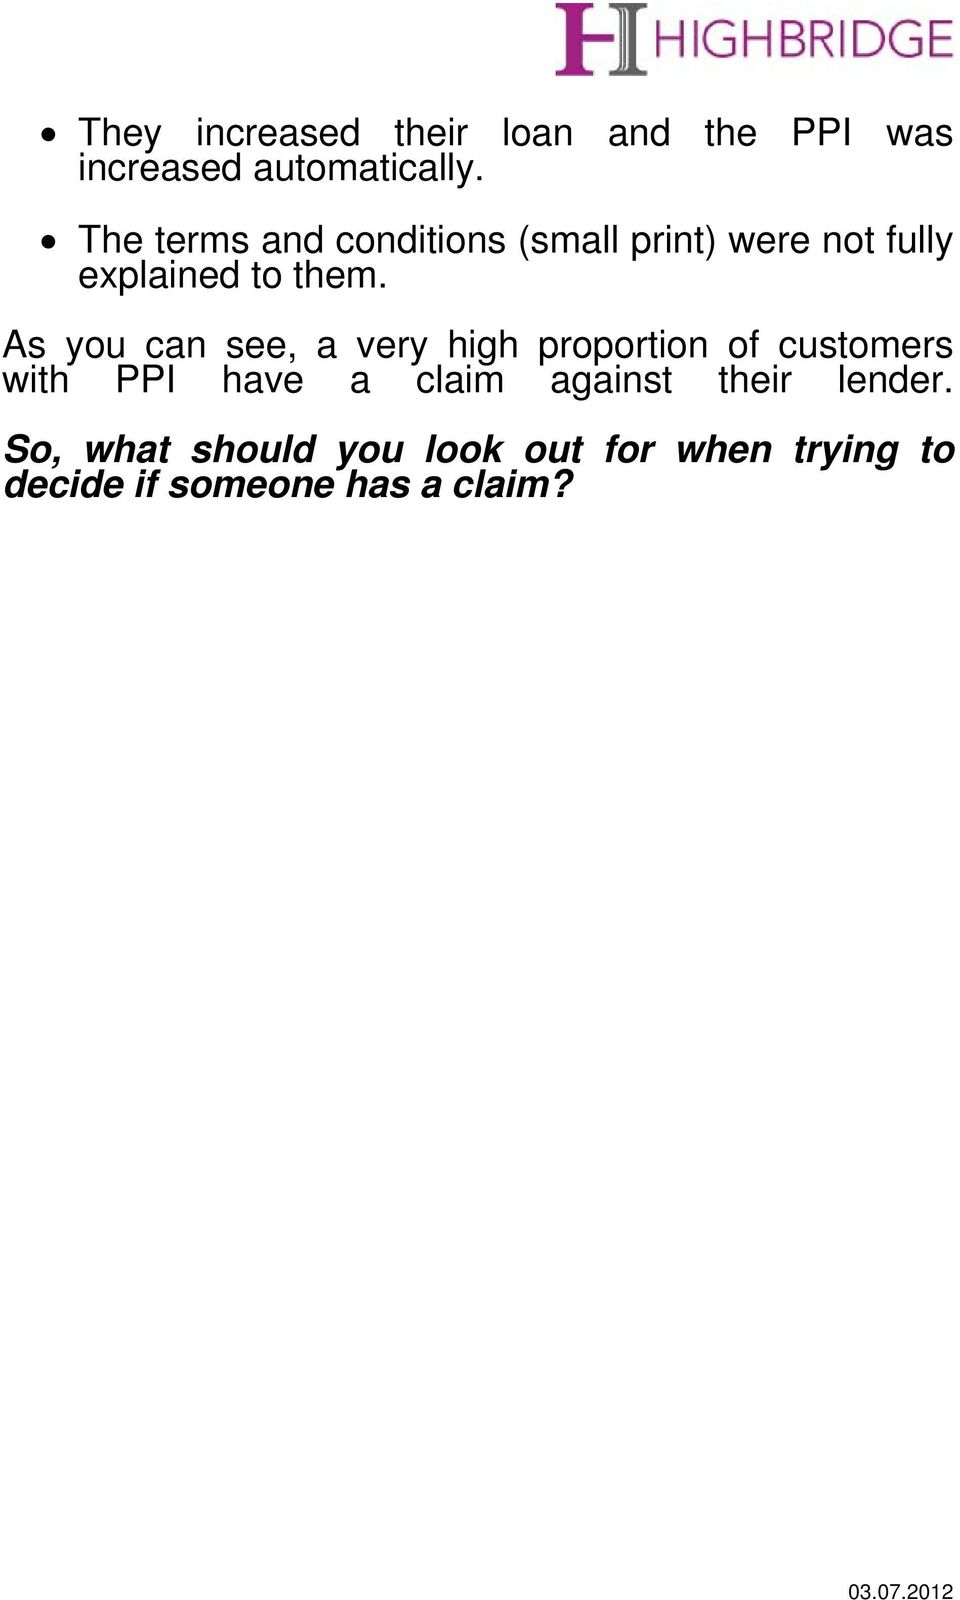 As you can see, a very high proportion of customers with PPI have a claim